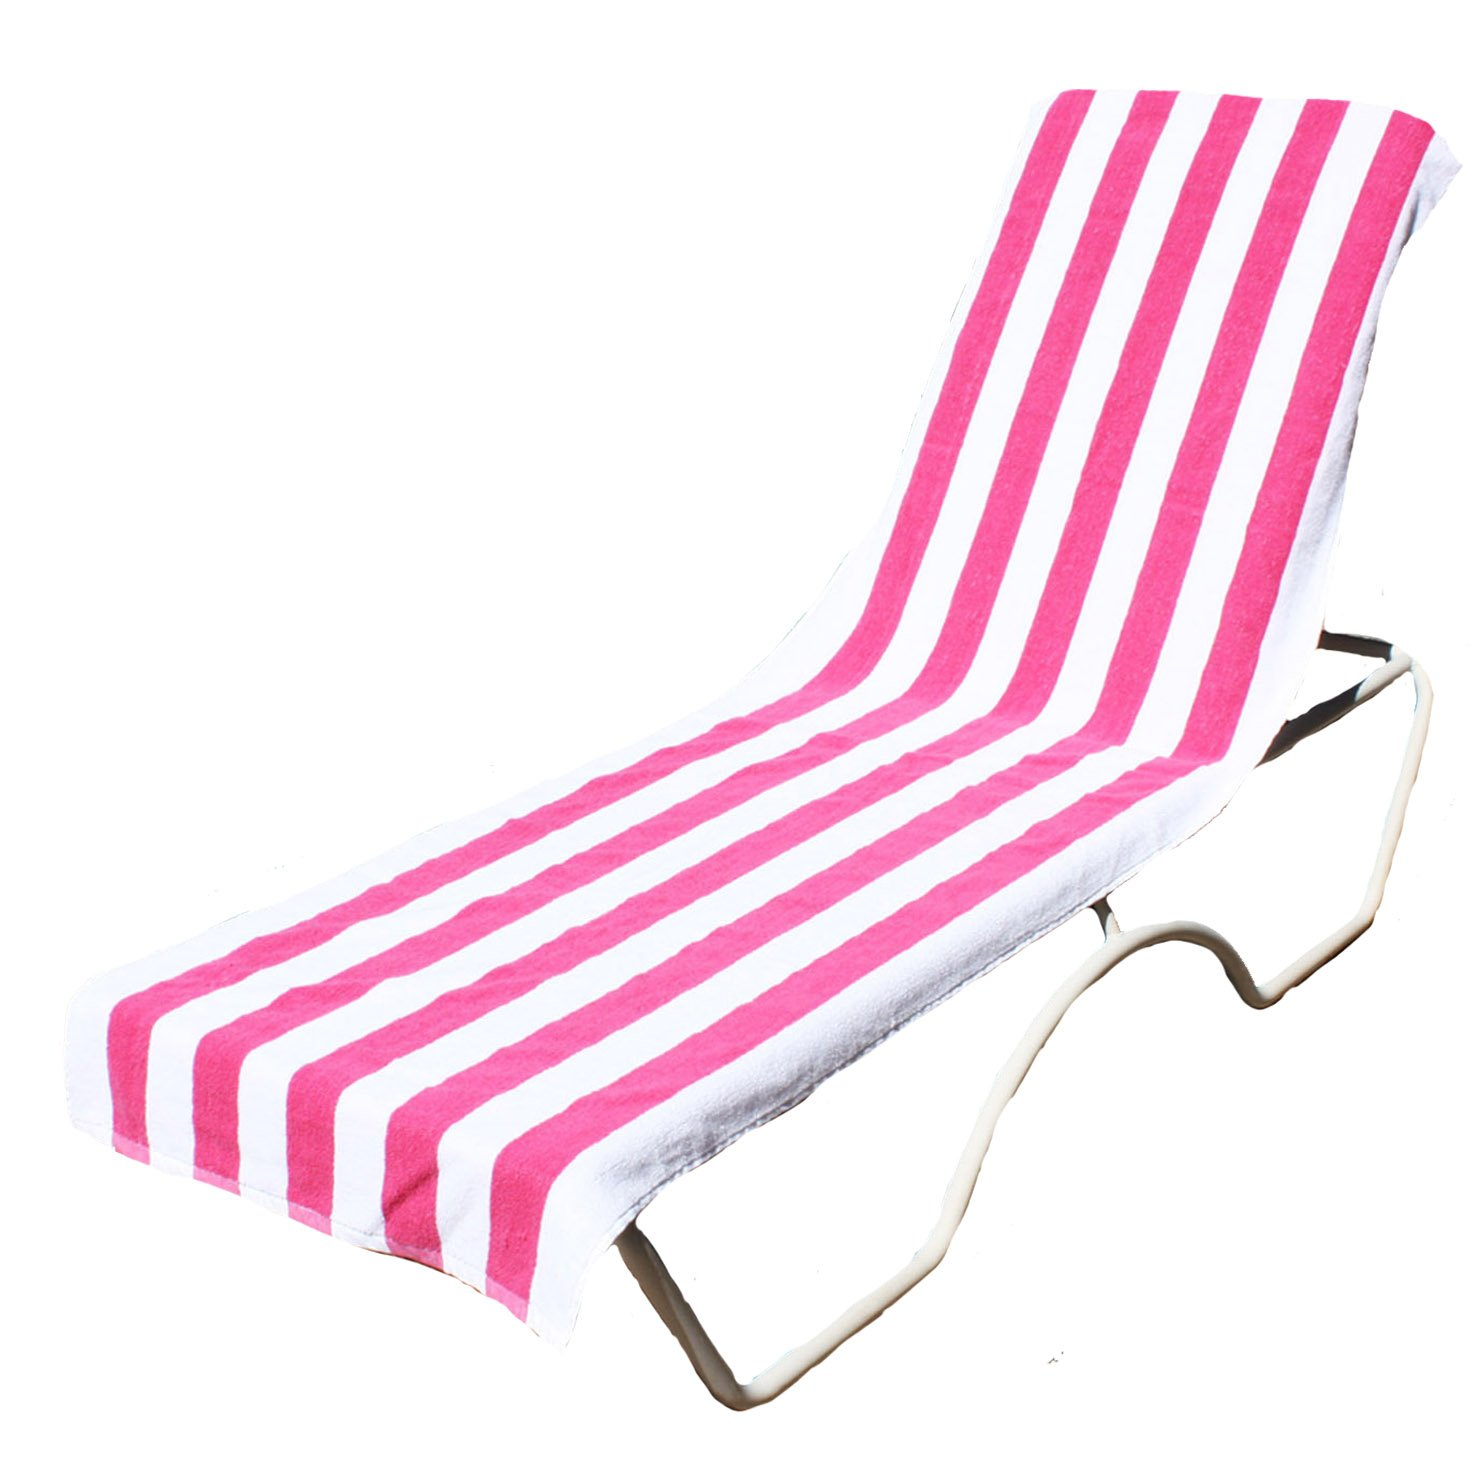 Amazon.com J u0026 M Home Fashions Lounge Chair Beach Towel With Fitted Pocket Top 26 by 82-Inch Pink Home u0026 Kitchen  sc 1 st  Amazon.com : chaise lounge towels fitted - Sectionals, Sofas & Couches